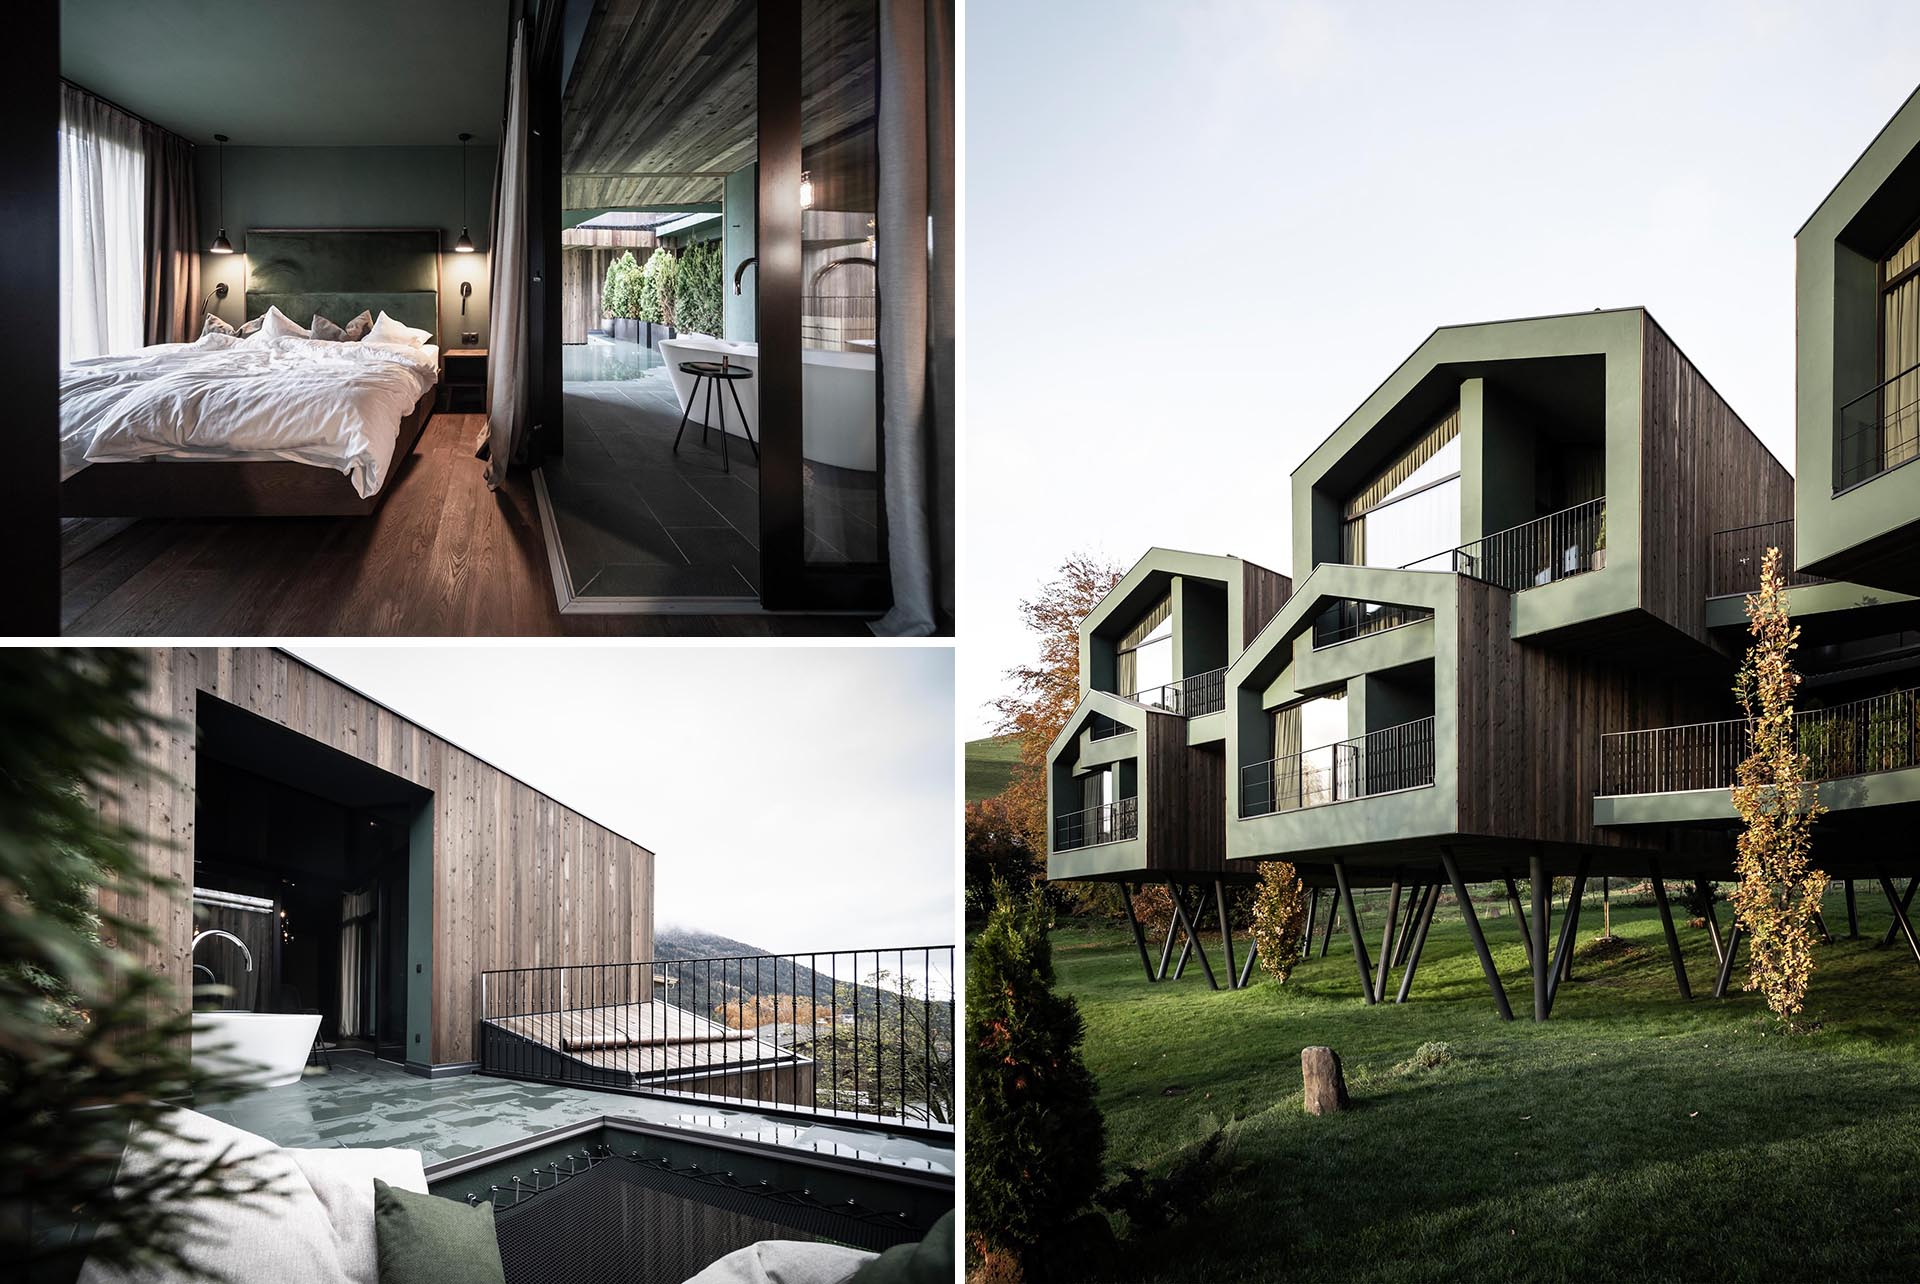 A collection of elevated hotel rooms designed to look like tree houses.